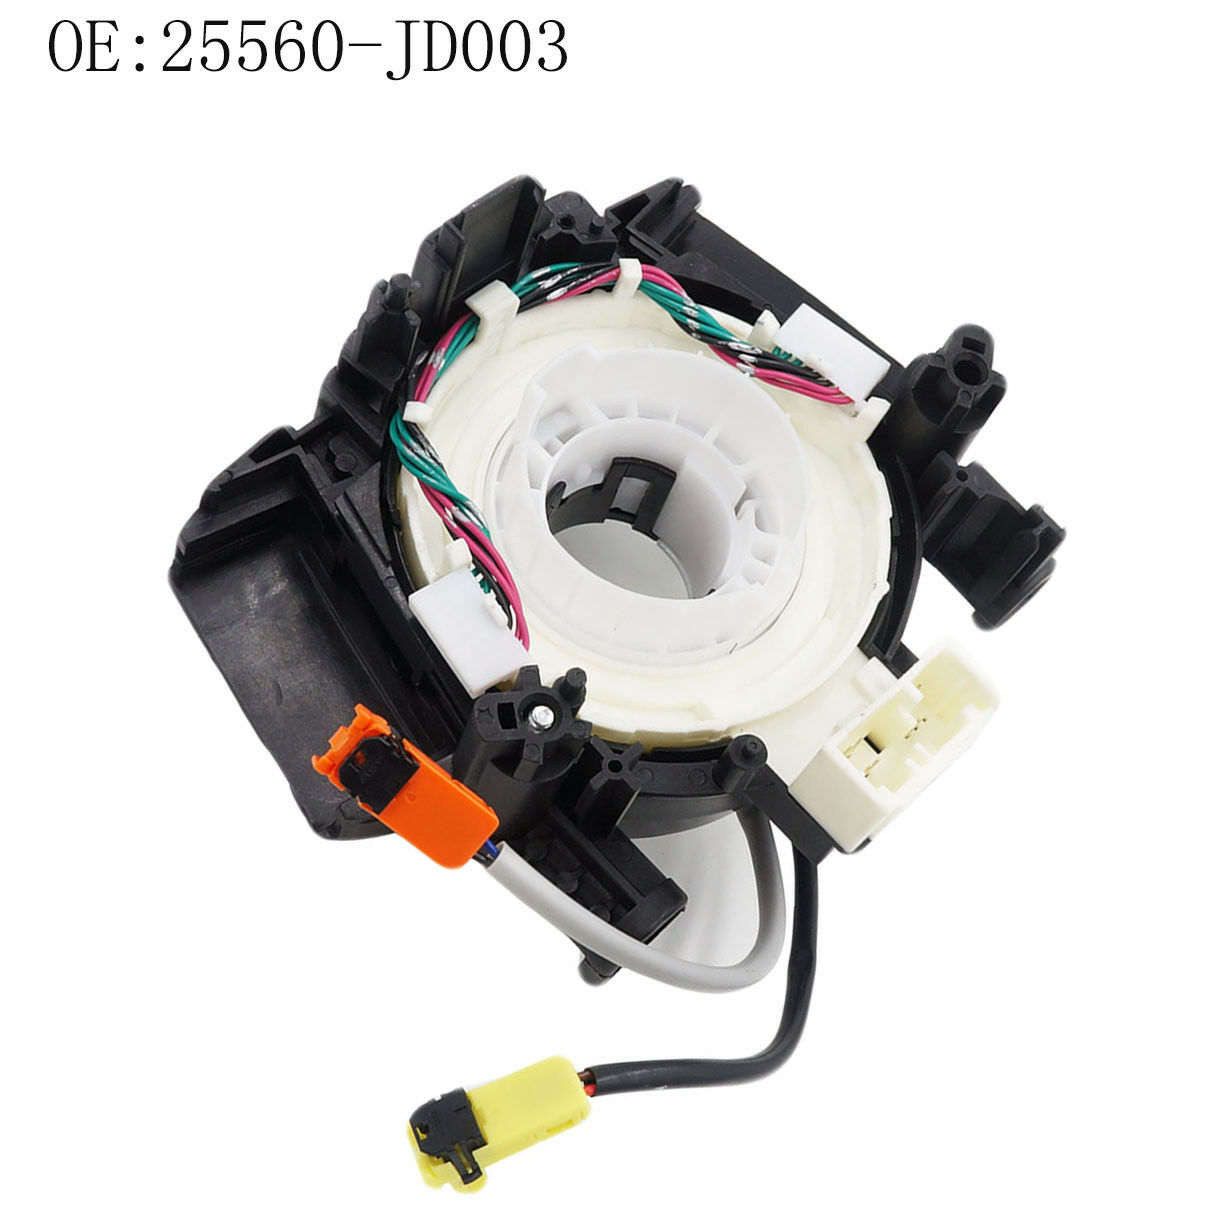 hight resolution of 25560 jd003 clock spring airbag spiral cable fits for nissan pathfinder qashqai for sale